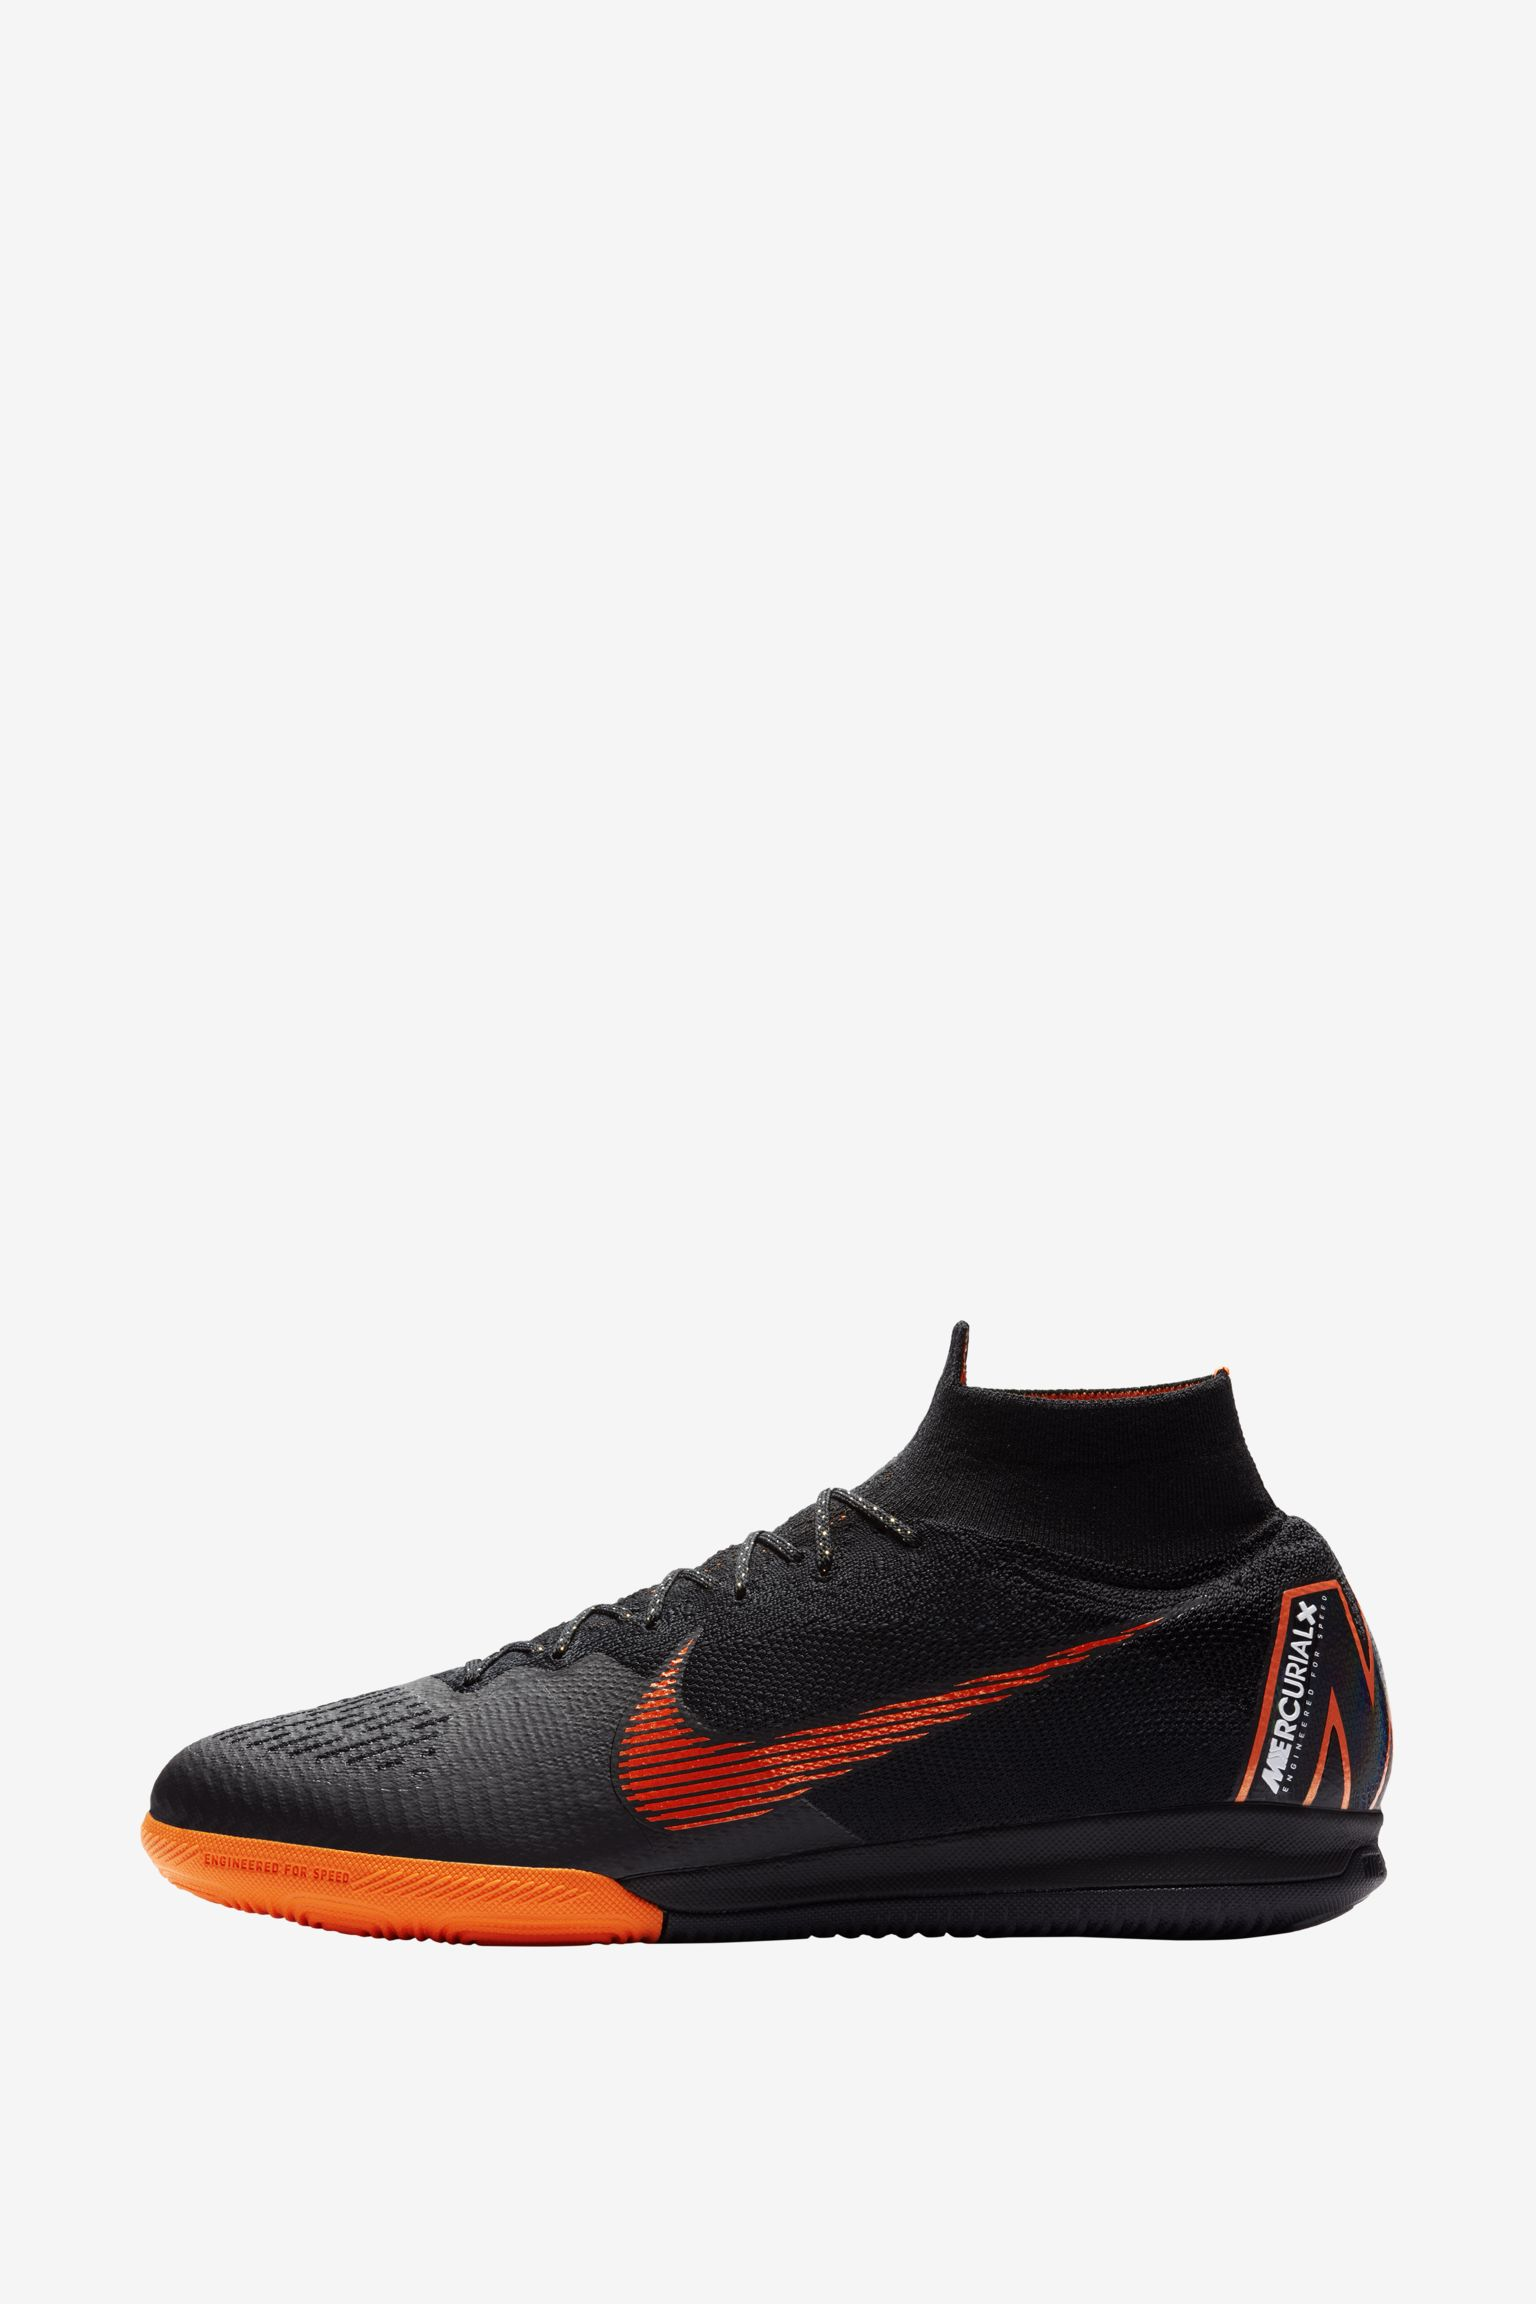 Born MercurialX Superfly IC